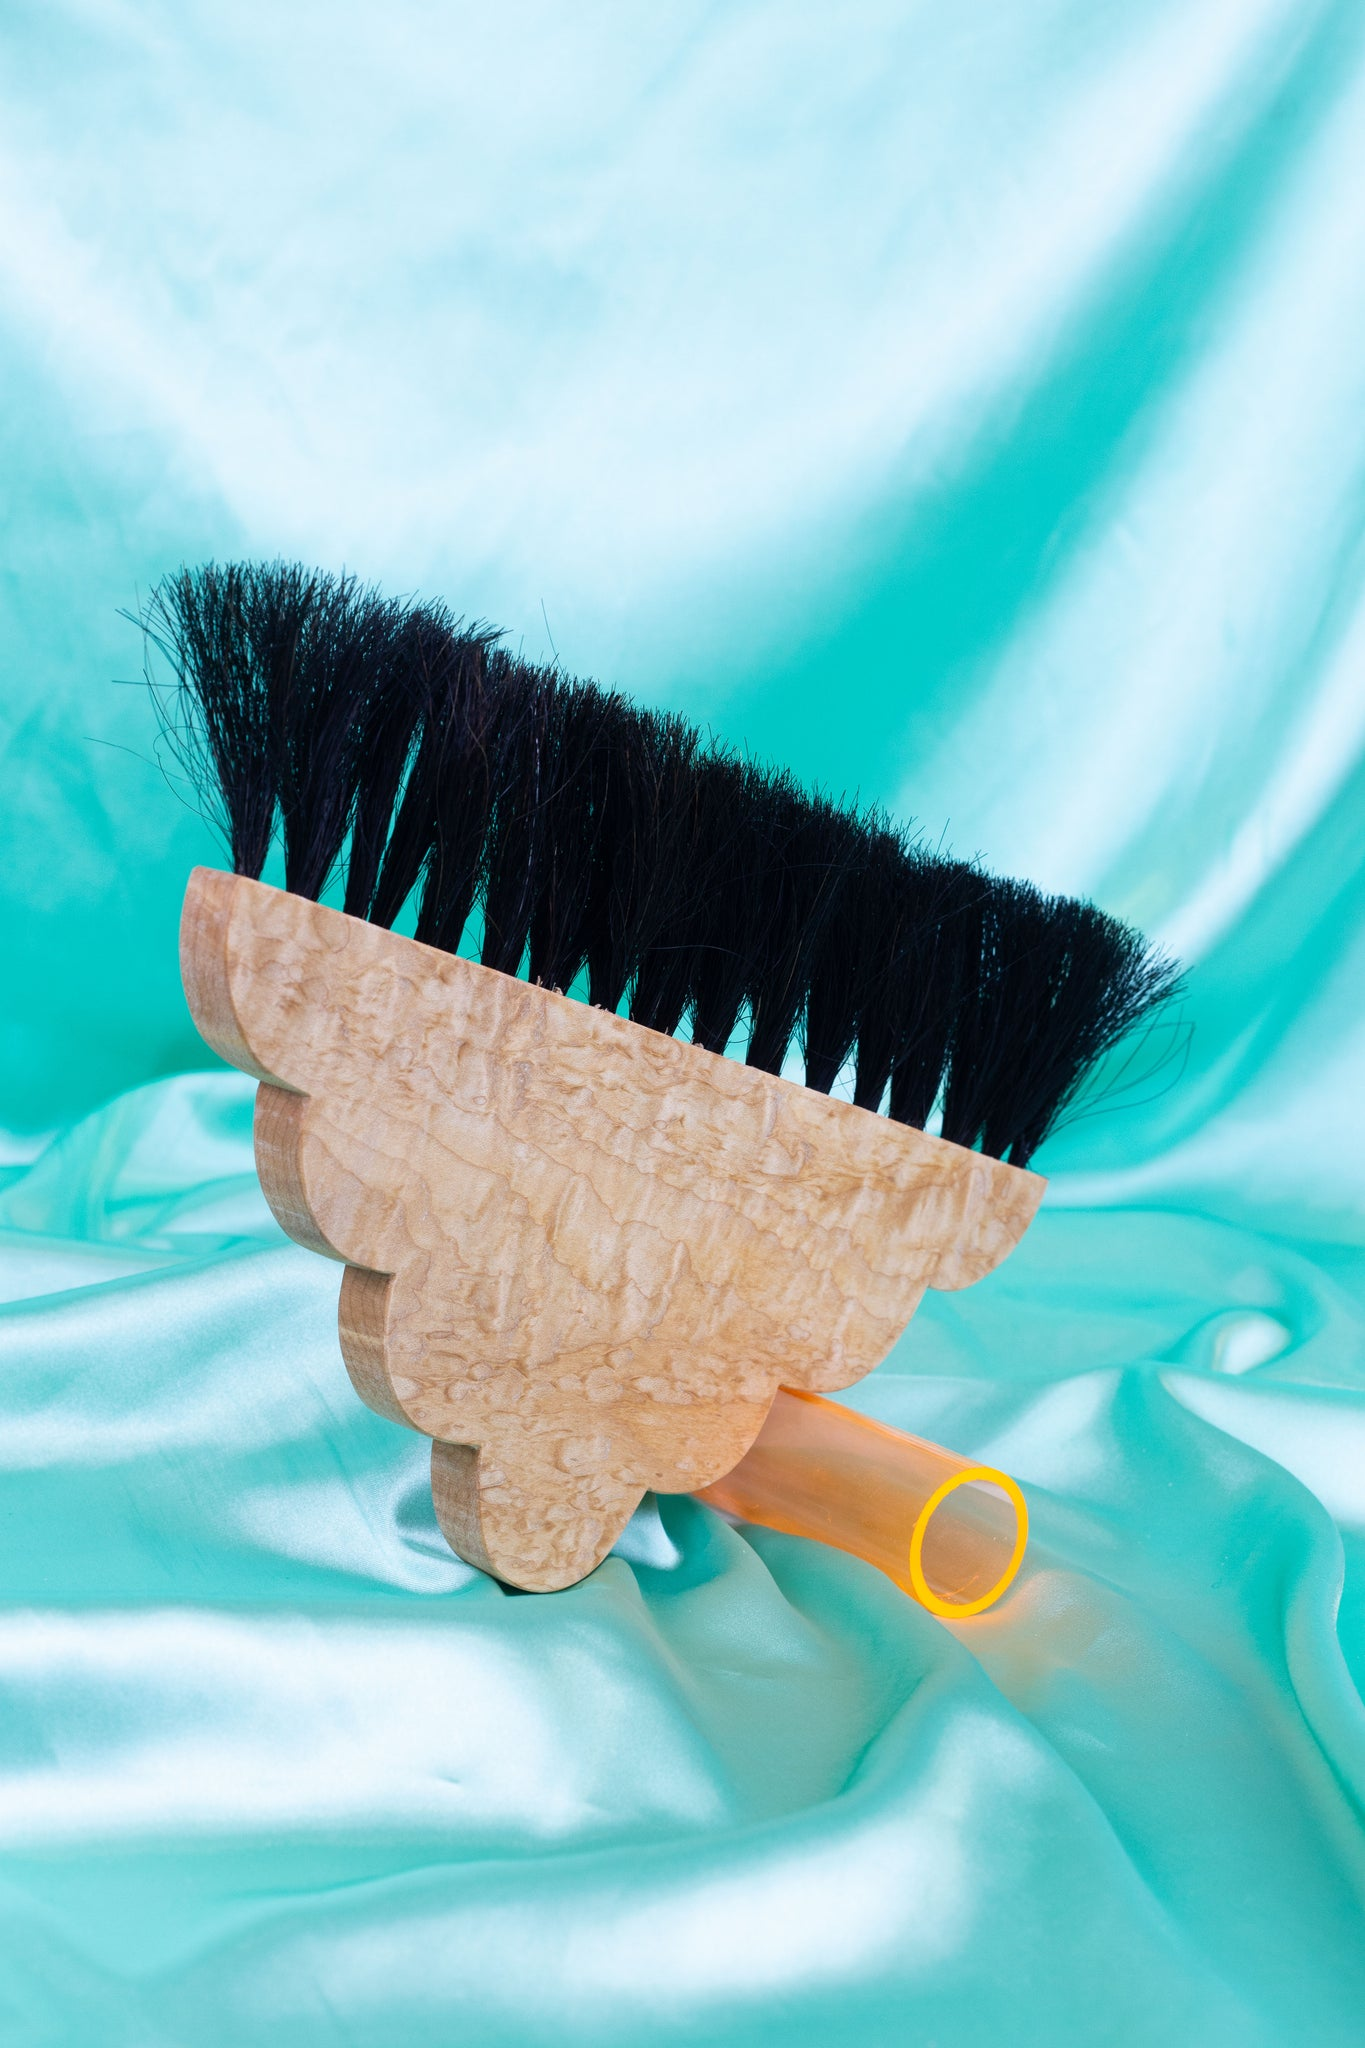 Sculptural brush broom